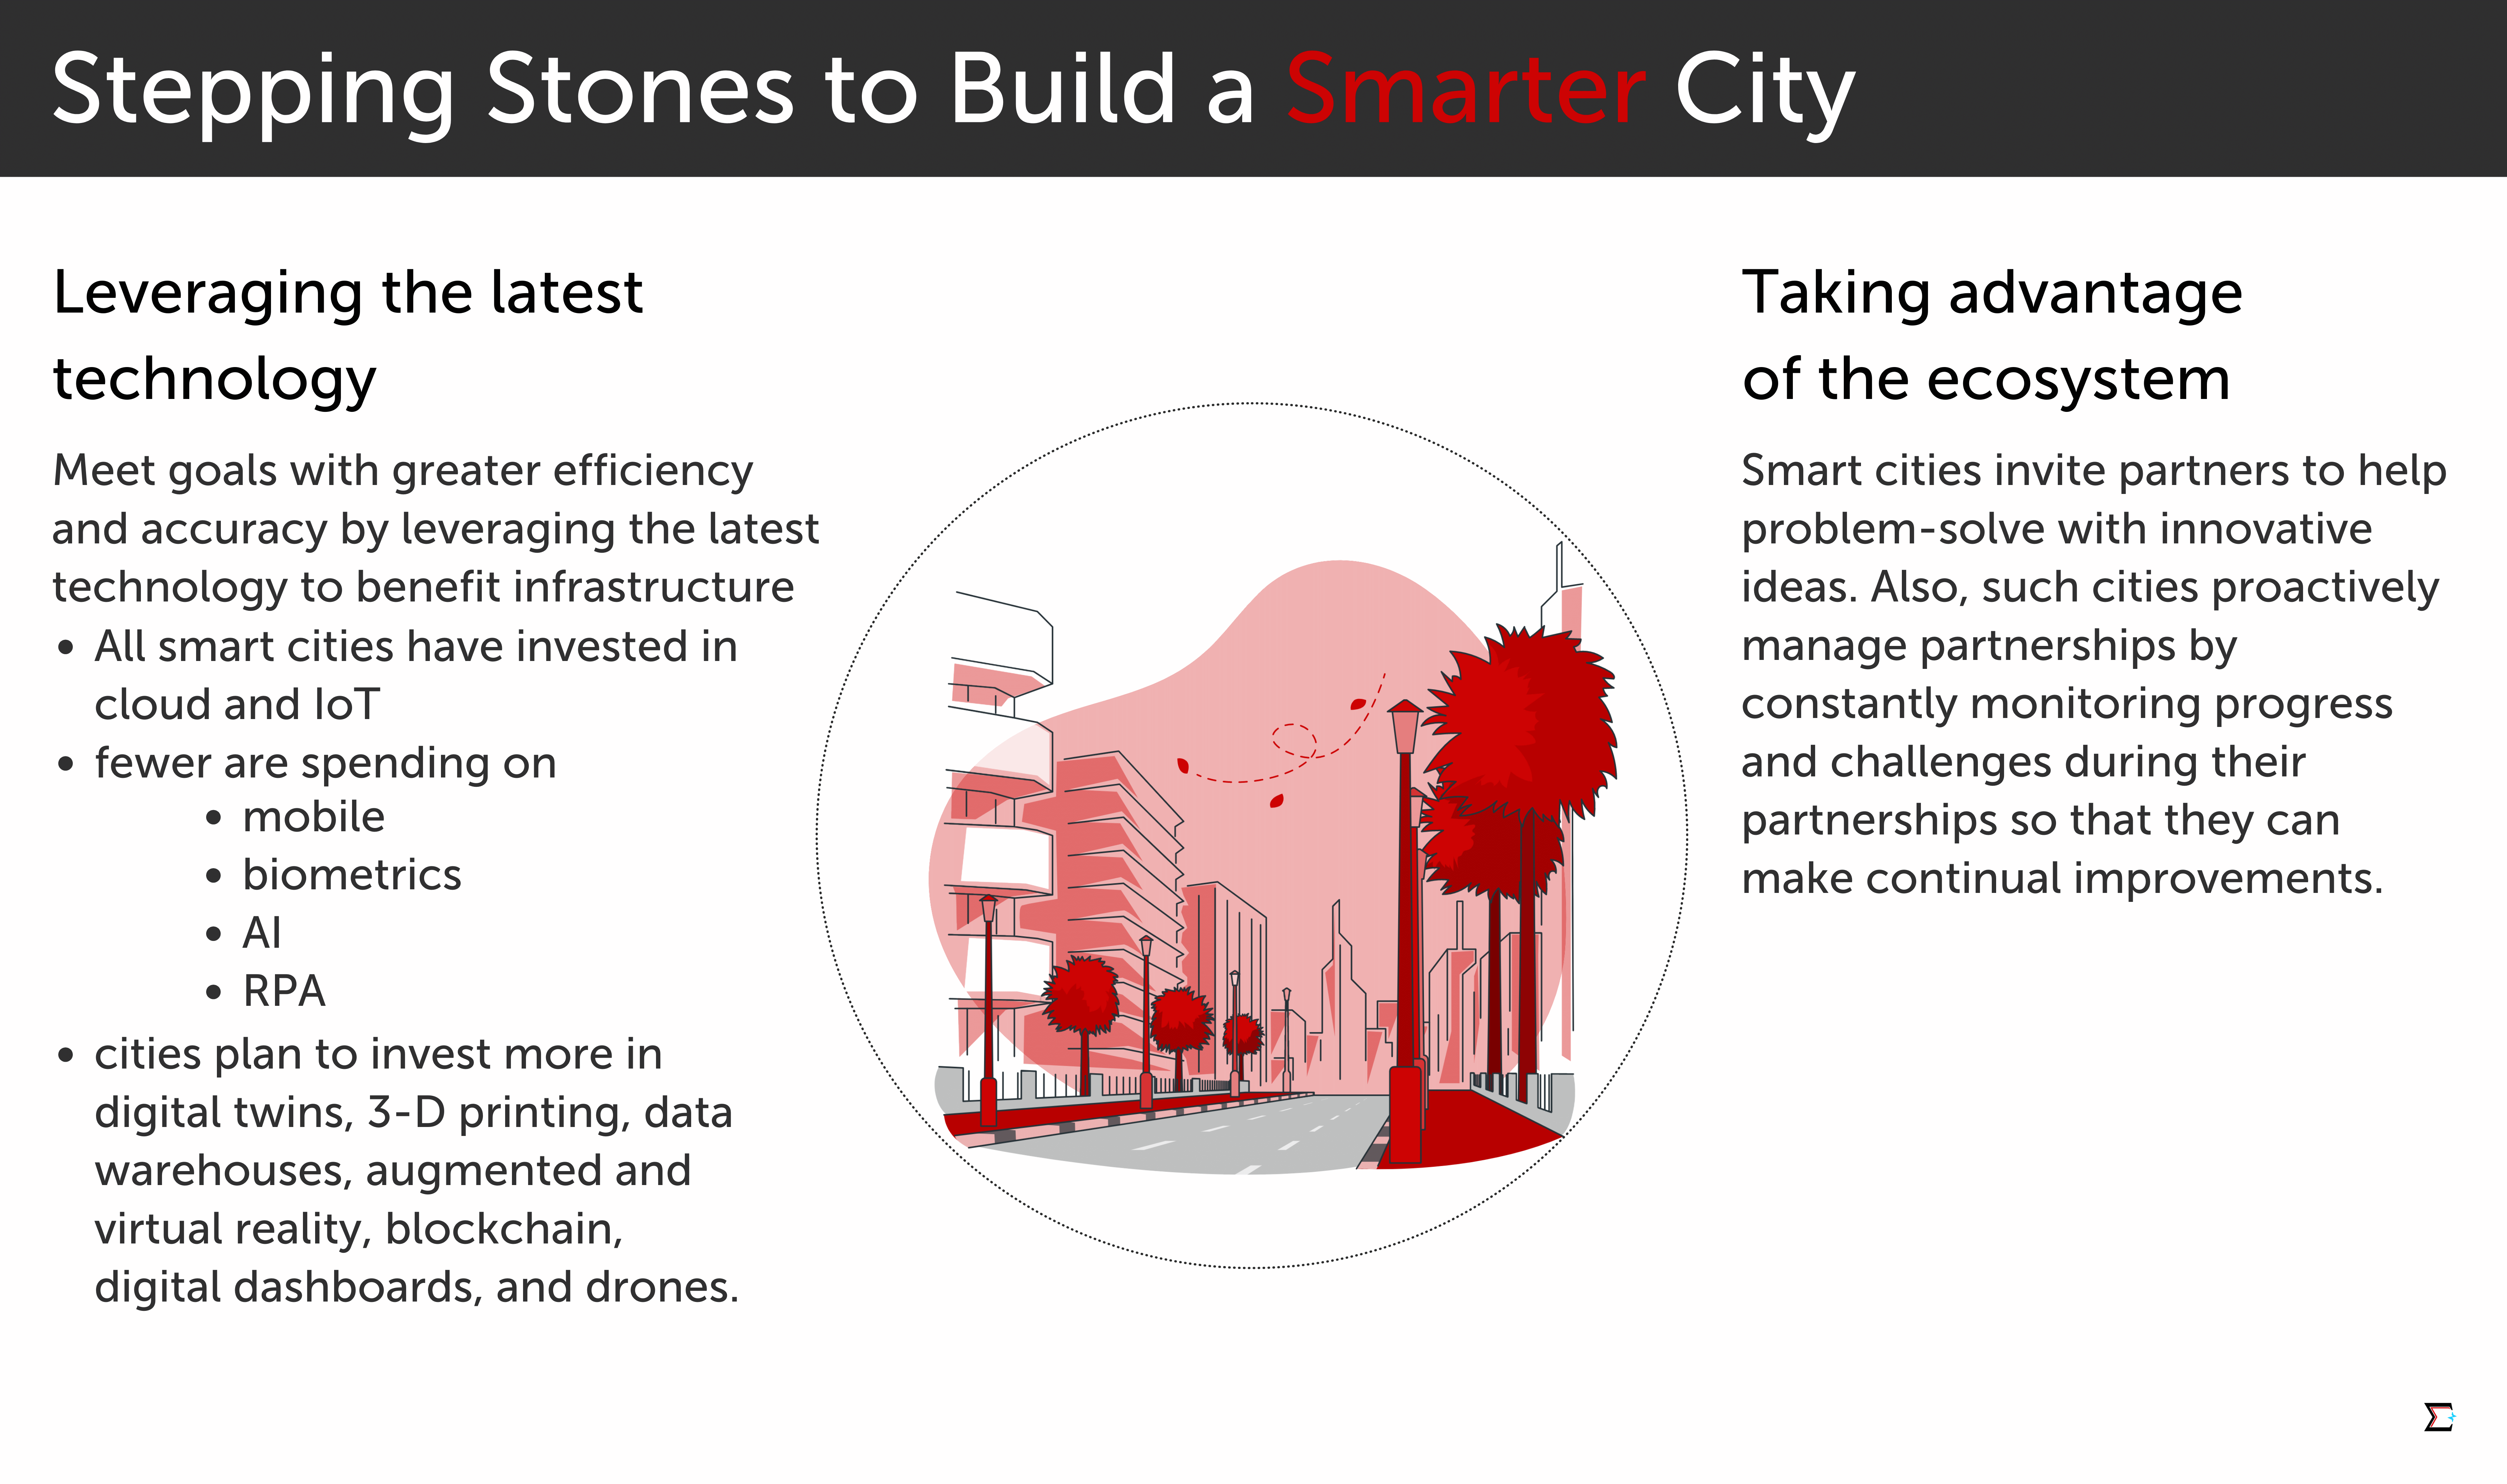 Stepping Stones to Build a Smarter City